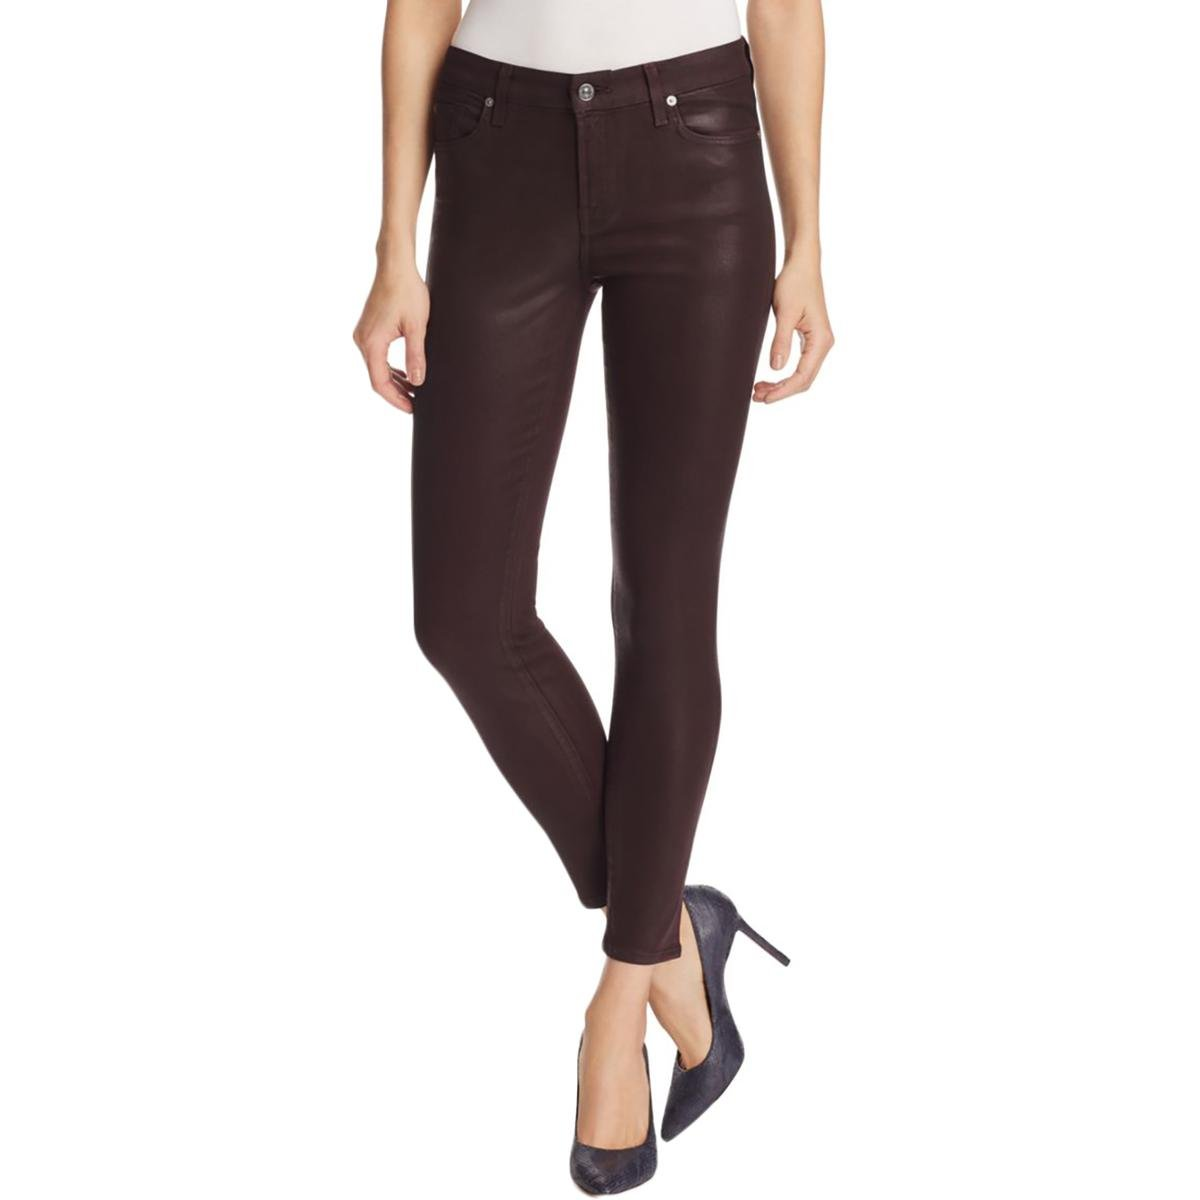 7 For All Mankind Women's The Ankle Skinny in Plum Plum Jeans 27 X 28